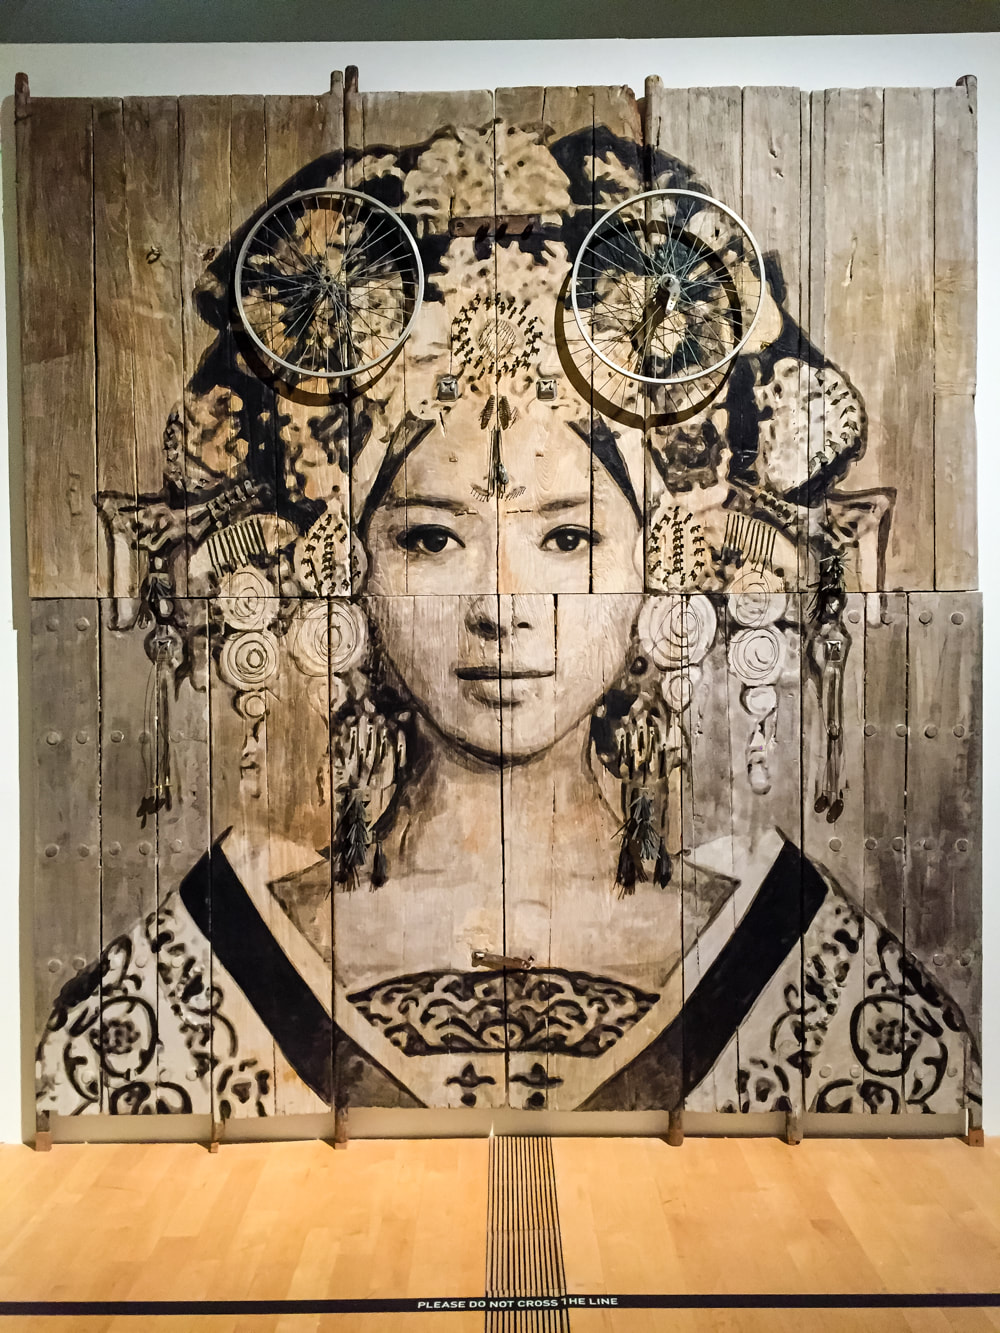 Singapore: Art From The Streets Exhibition at the ArtScience Museum - Empress Wu - YZ - 2016.